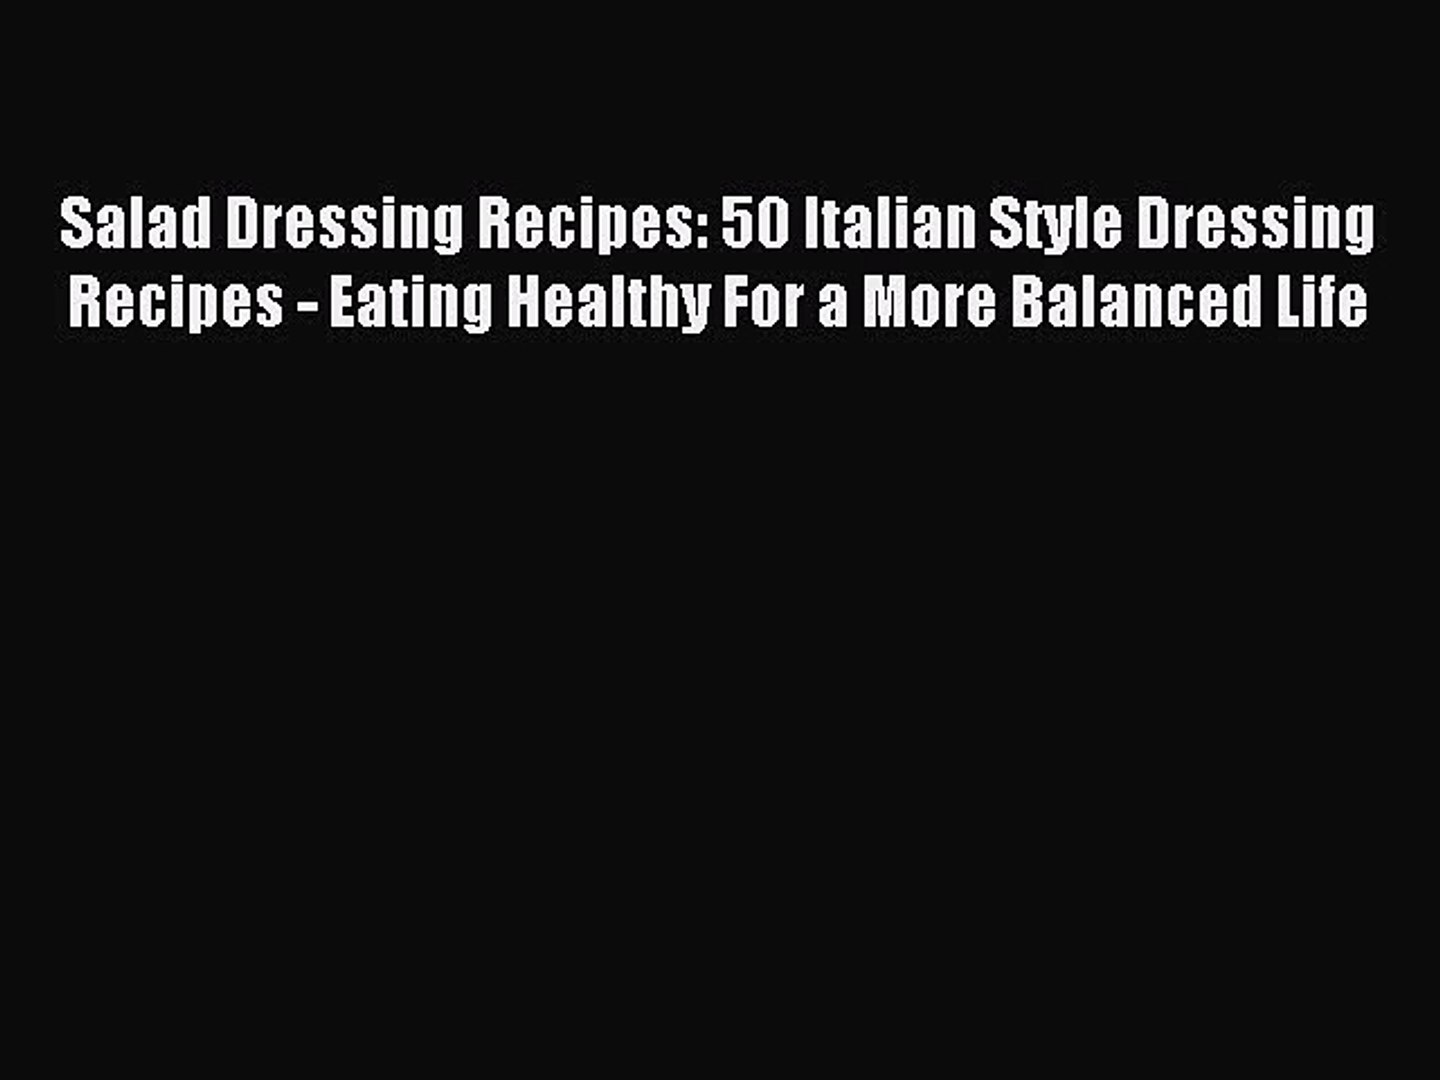 Read Salad Dressing Recipes: 50 Italian Style Dressing Recipes - Eating Healthy For a More